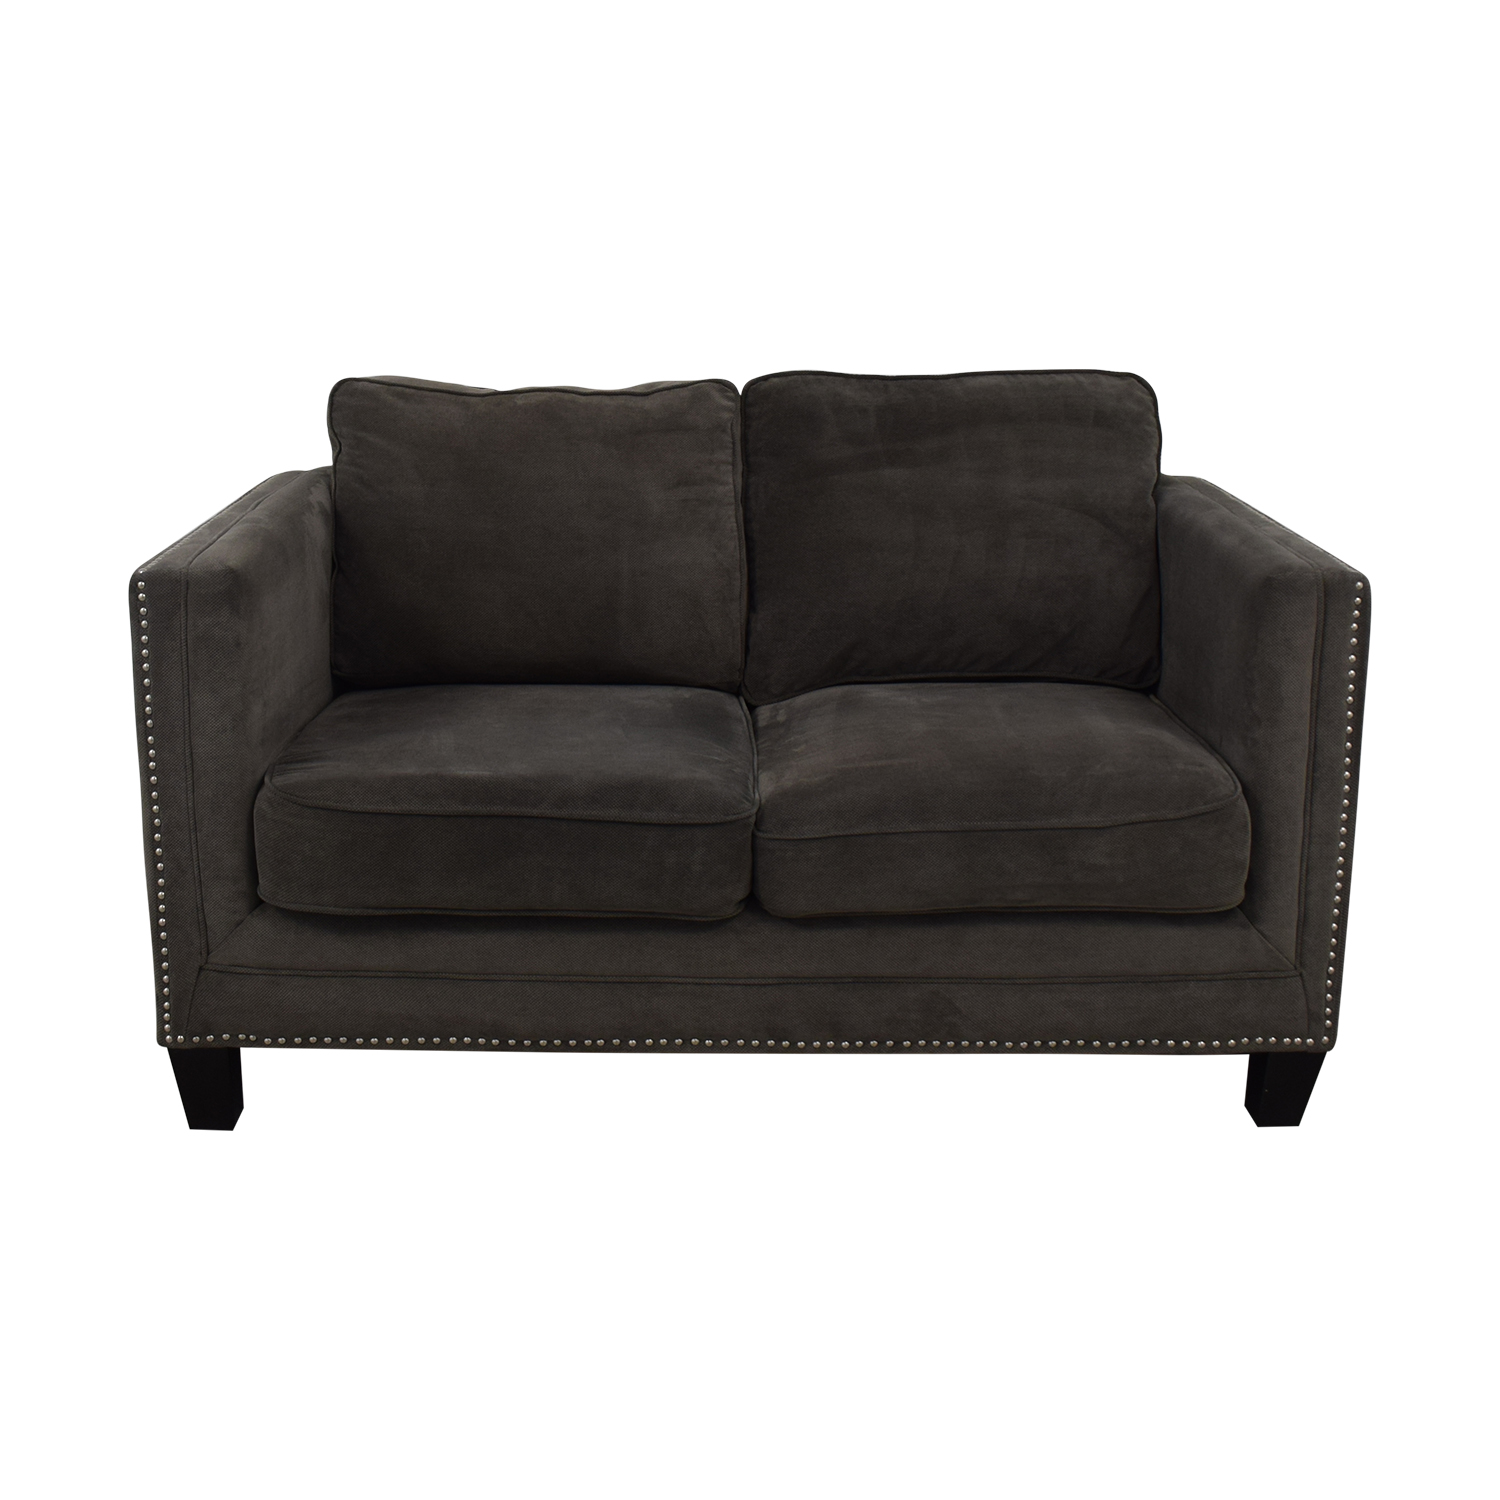 Emerald Home Furnishings Emerald Home Furnishings Carlton Loveseat discount